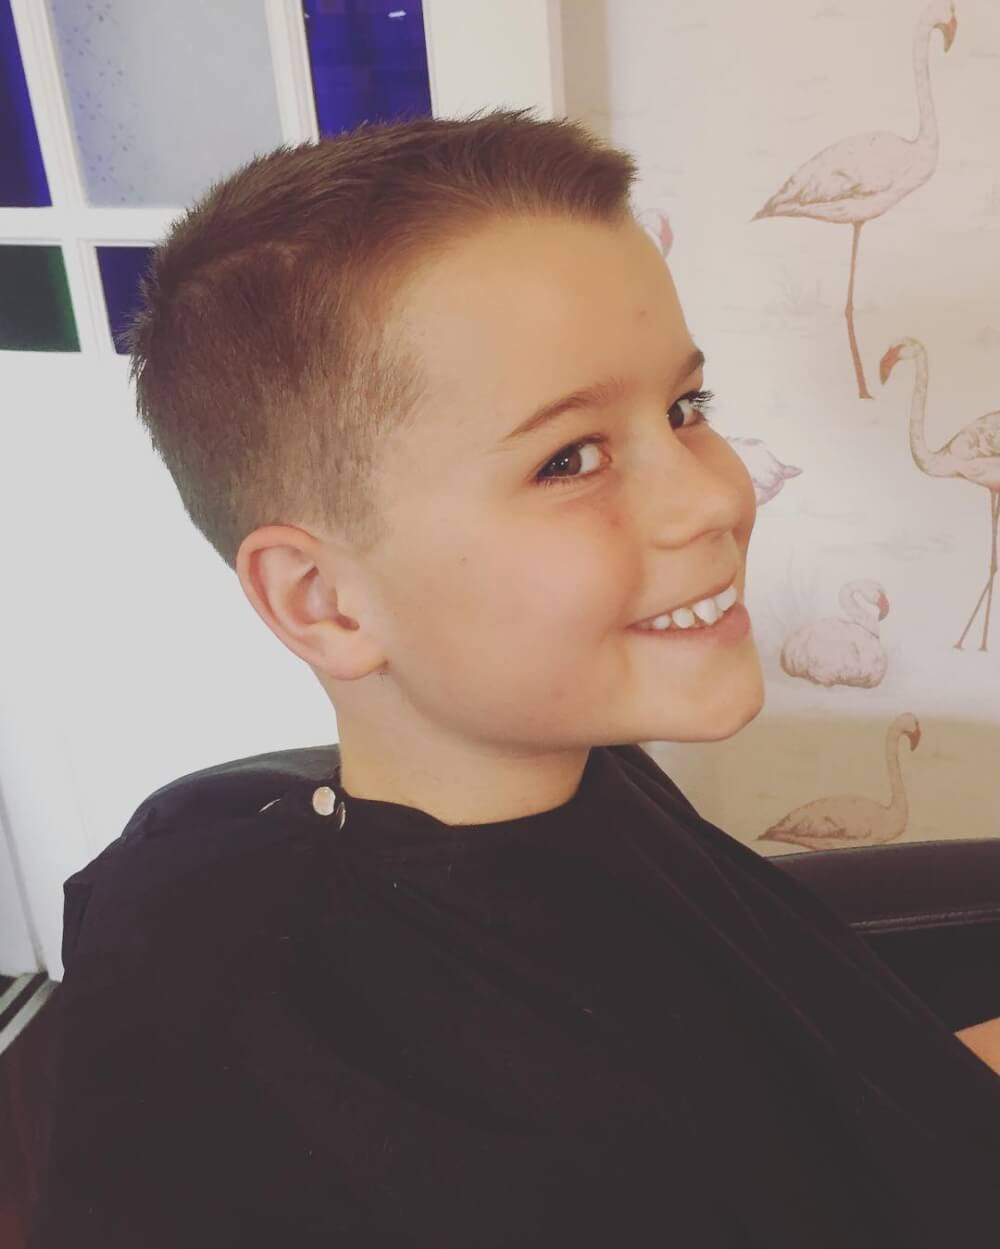 Best ideas about How To Cut Little Boys Hair . Save or Pin 28 Coolest Boys Haircuts for School in 2019 Now.